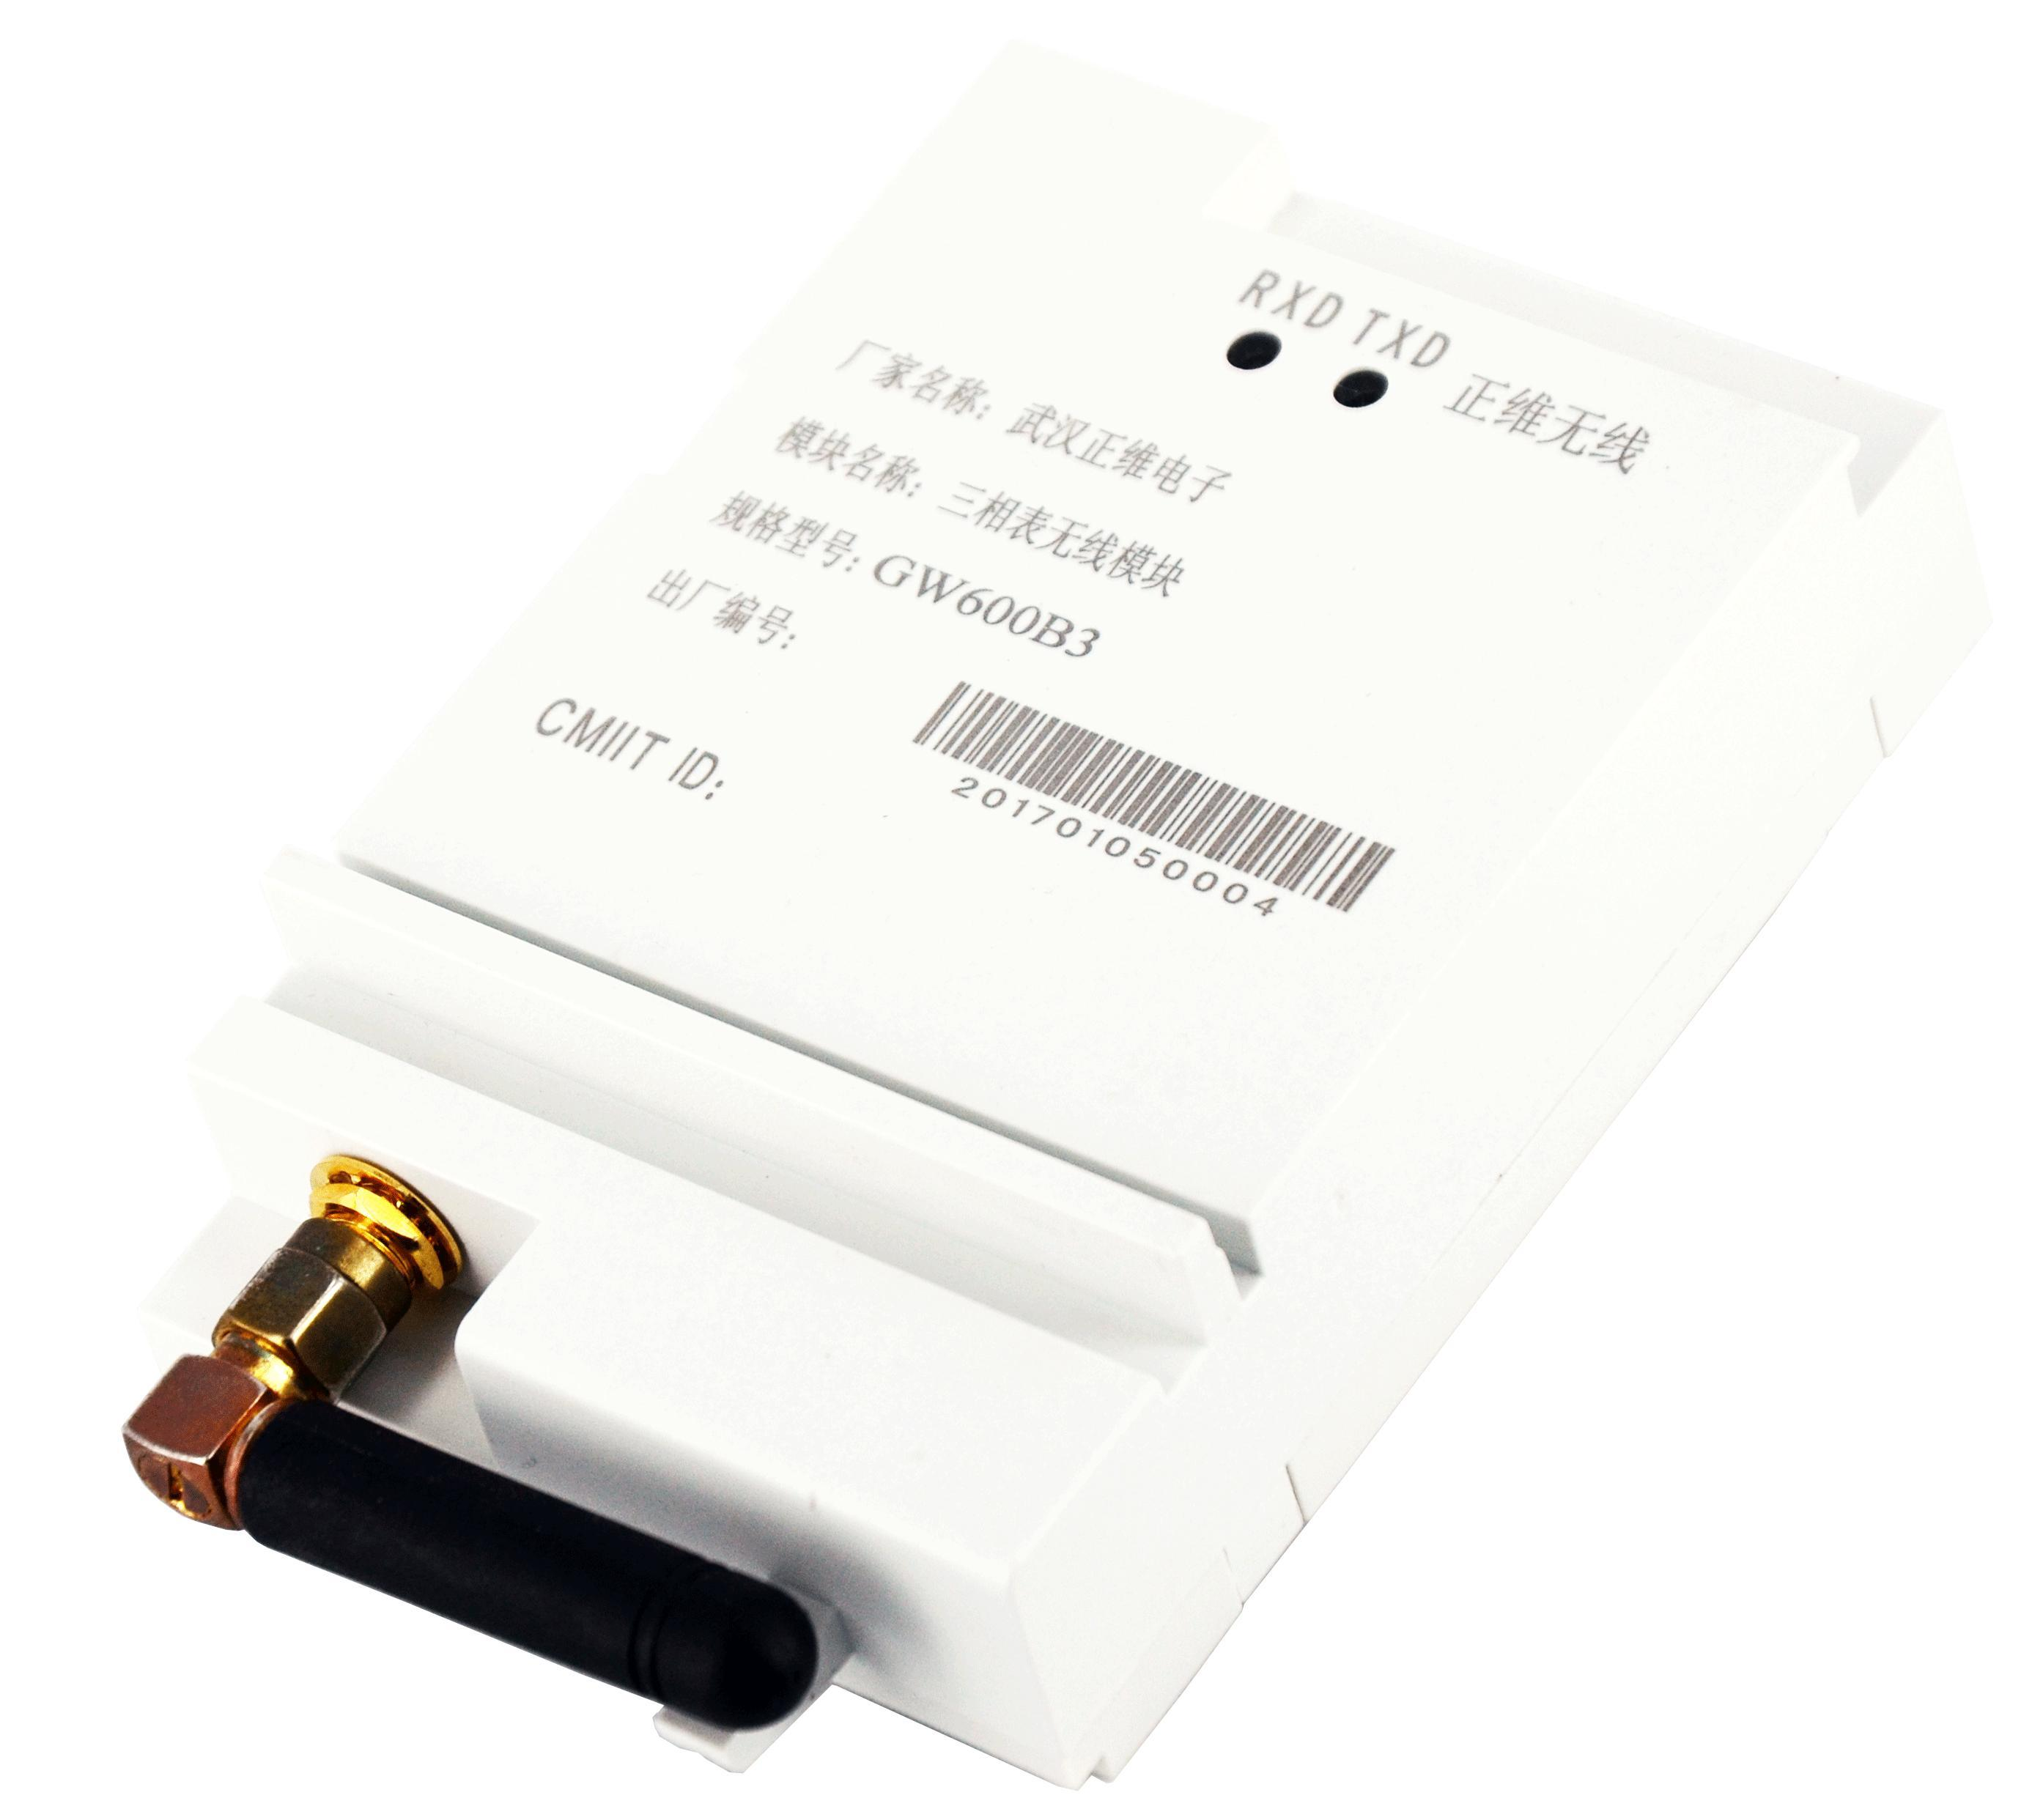 Remote Wireless Electricity Meter Reading Device / Wireless Data Concentrator Module